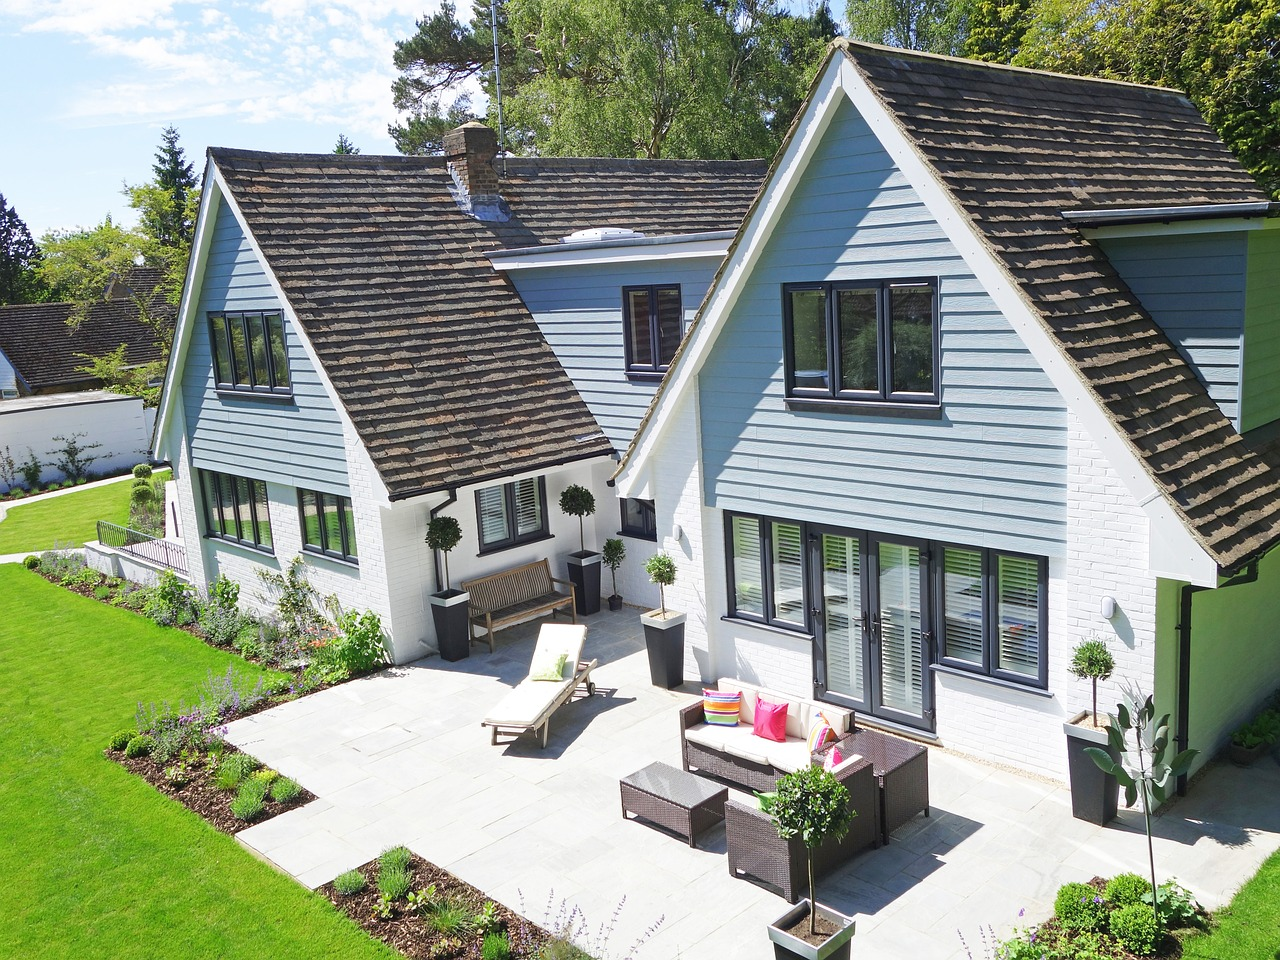 (Alta Roofing Inc.) Residential Roofing in Del Mar, CA